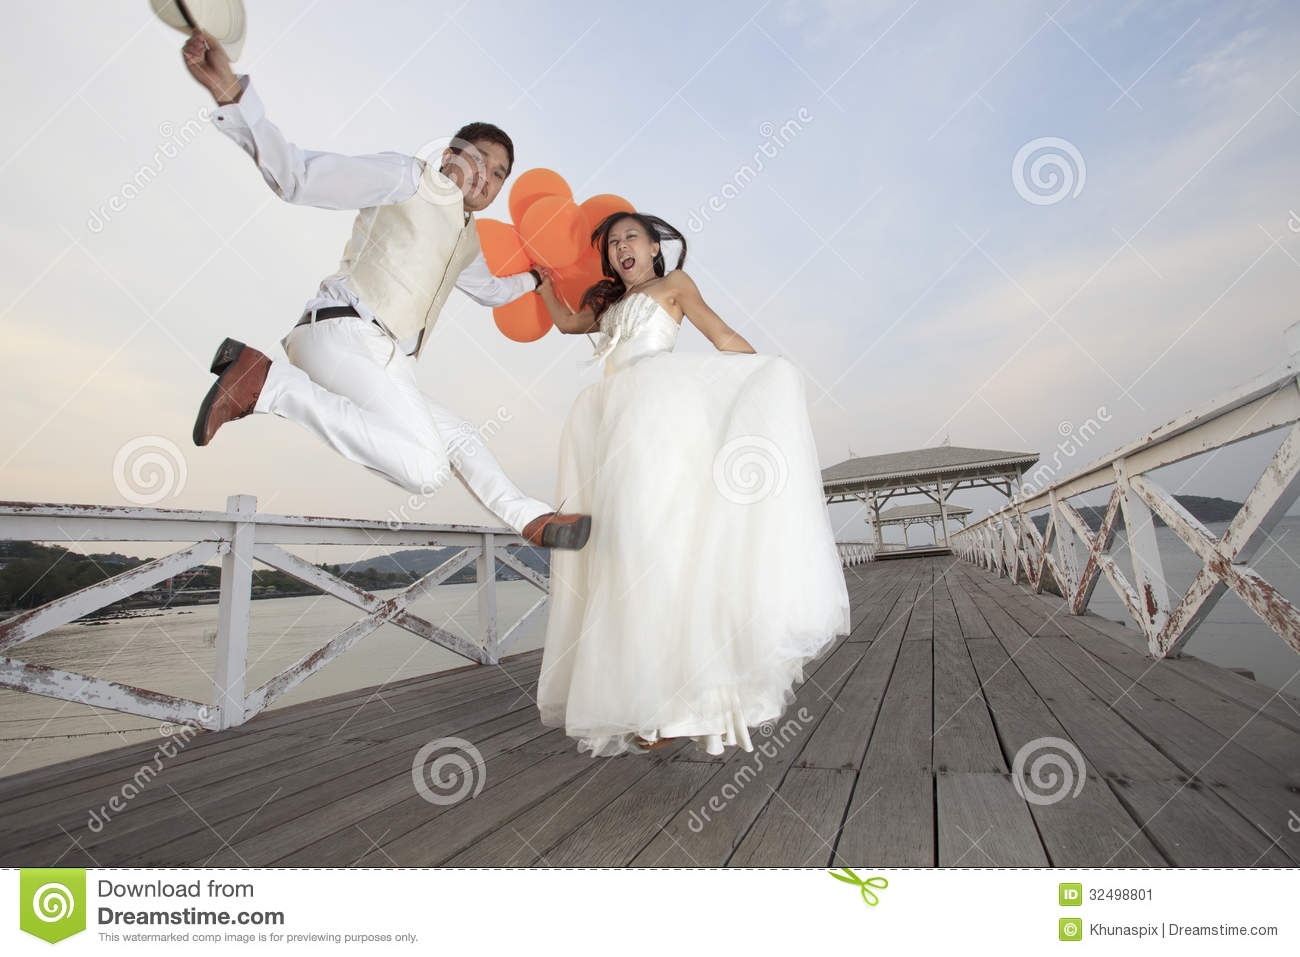 Couple Of Groom And Bride In Wedding Suit Jumping With Glad Em Stock ...